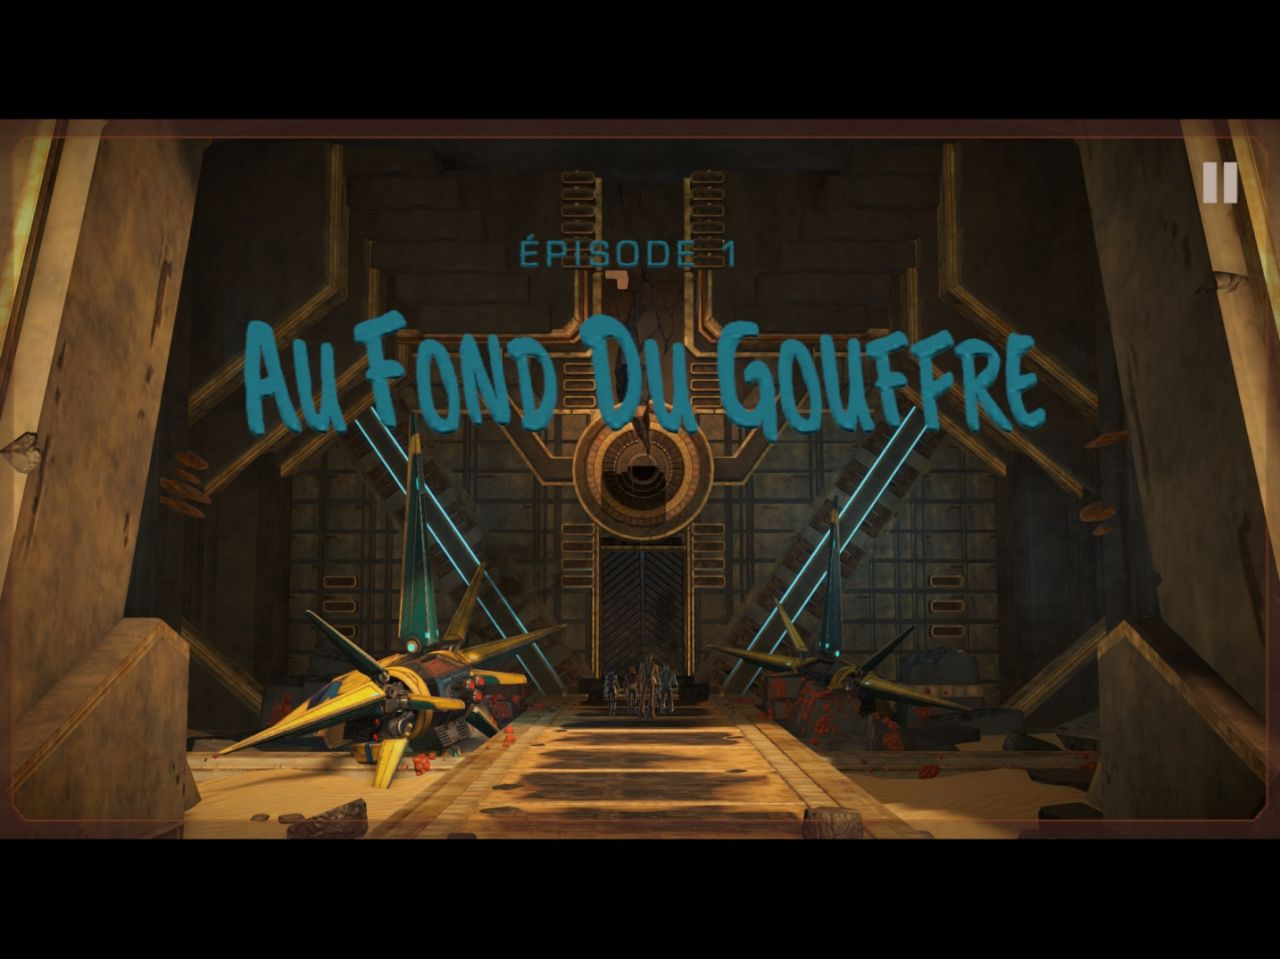 Marvel's Guardians of the Galaxy TTG (Episode 1 : Au fond du gouffre) (copie d'écran 9 sur iPhone / iPad)